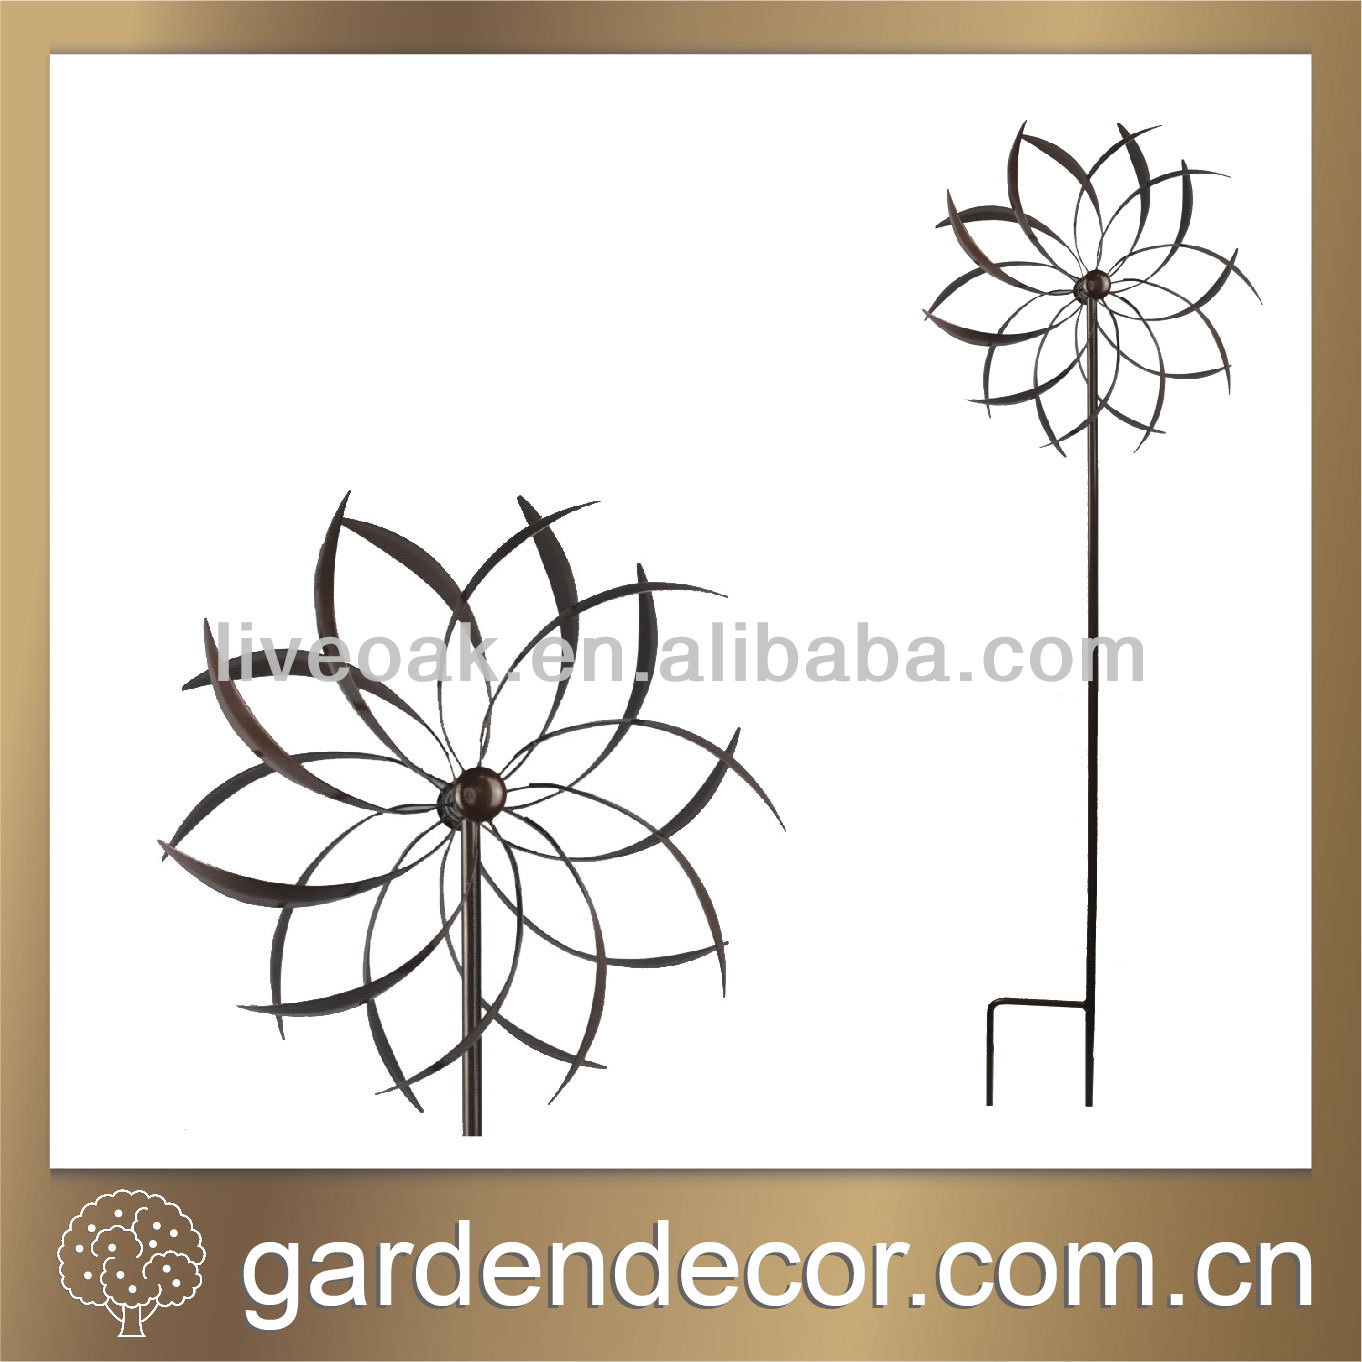 hot new products for 2014 garden decoration garden windmill metal windmill